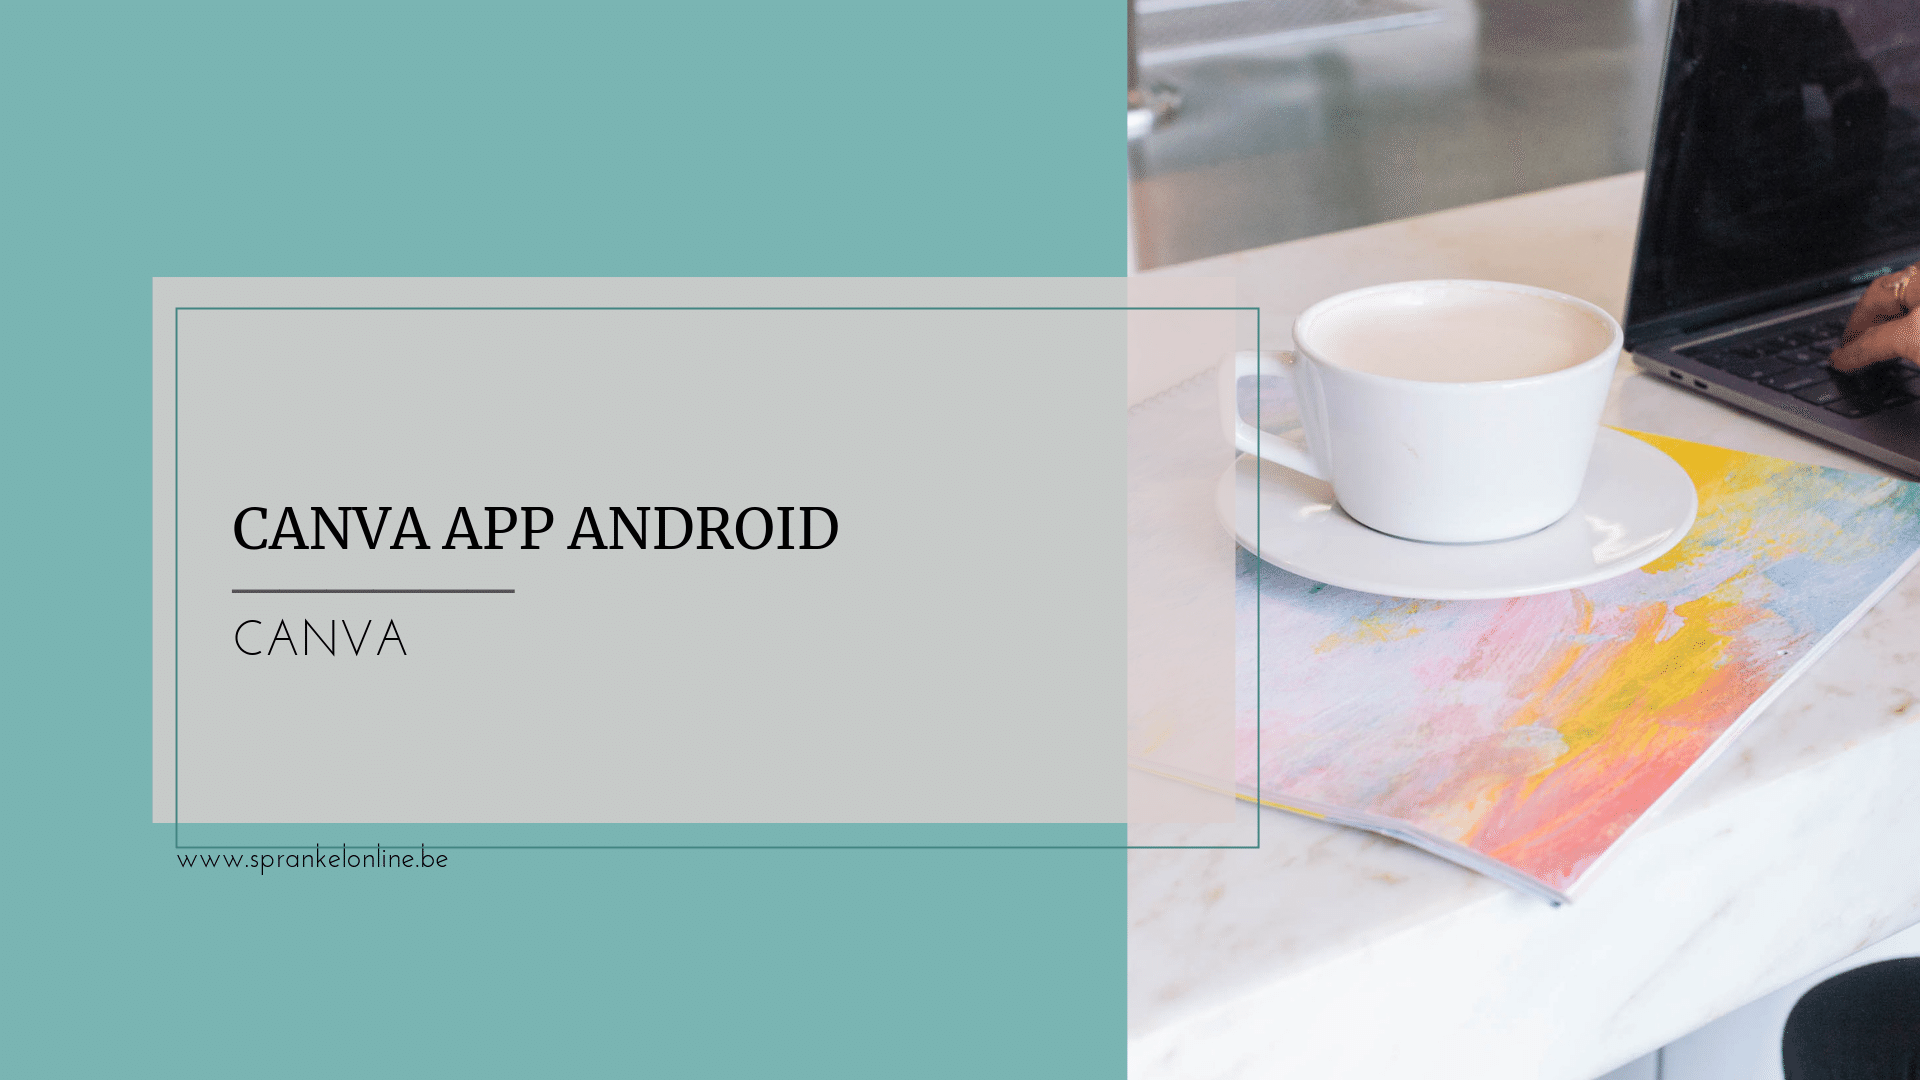 Canva App Android